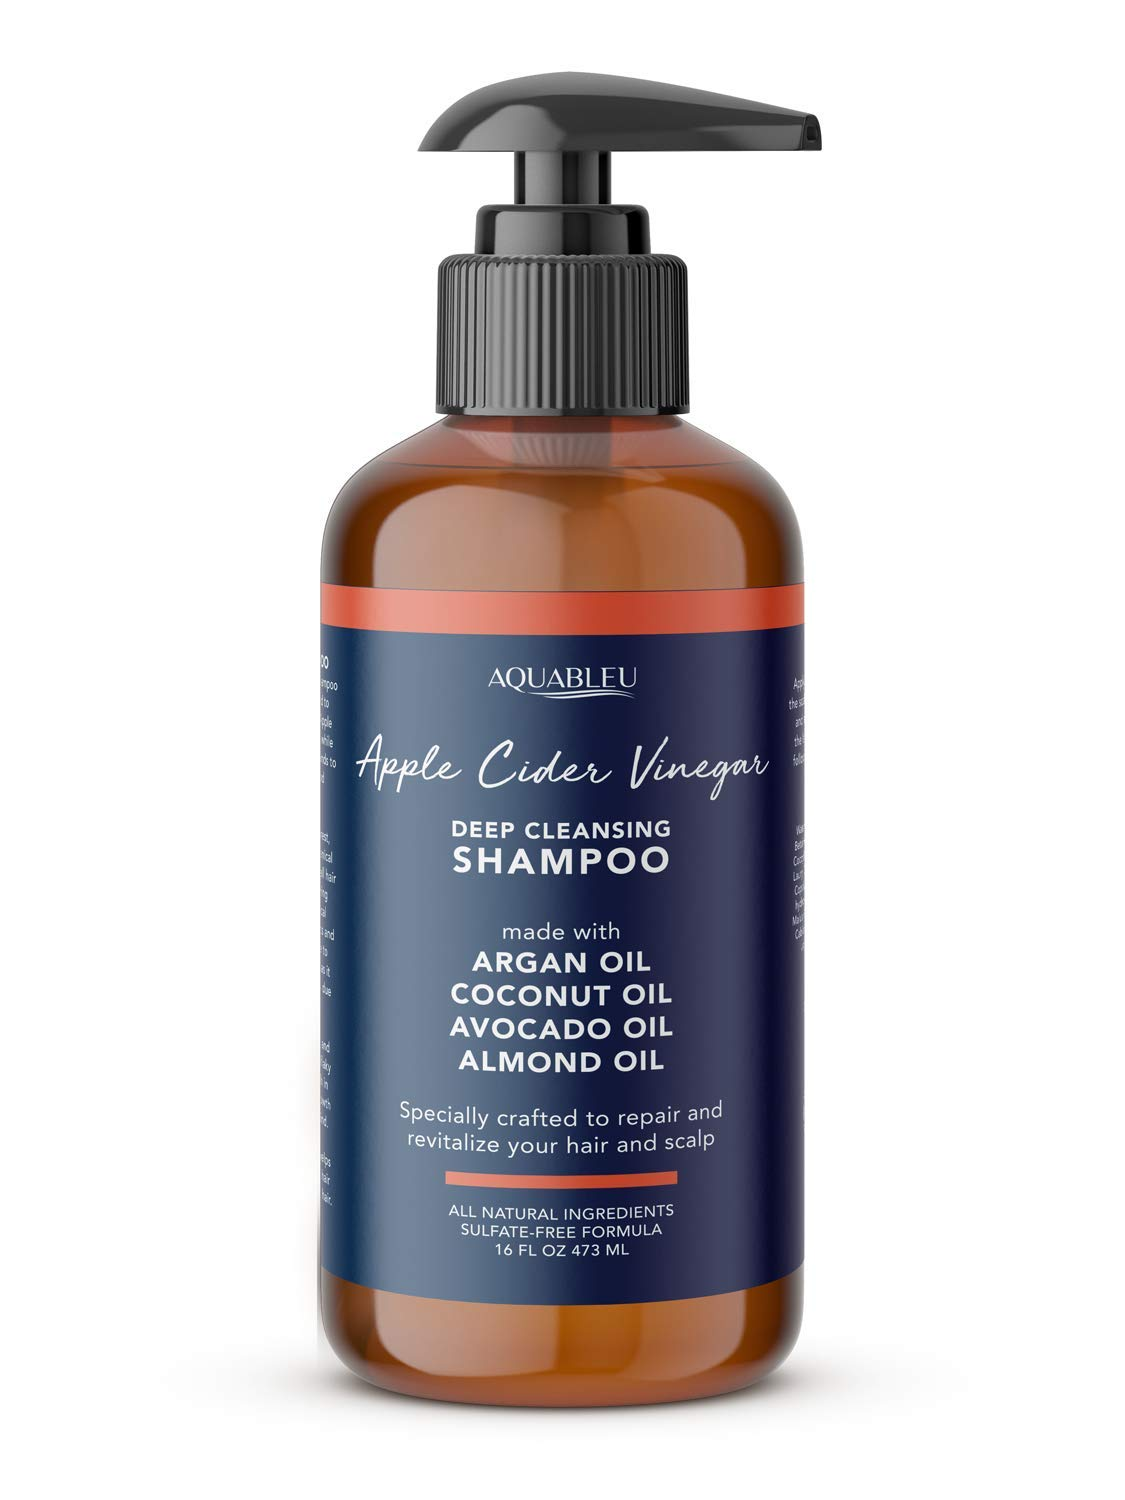 Apple Cider Vinegar Shampoo - Clarifying & Restorative - Anti Frizz & Dandruff - For Hair loss - No Sulfates Parabens & Silicones - For color-treated hair - For Men & Women (16 oz )